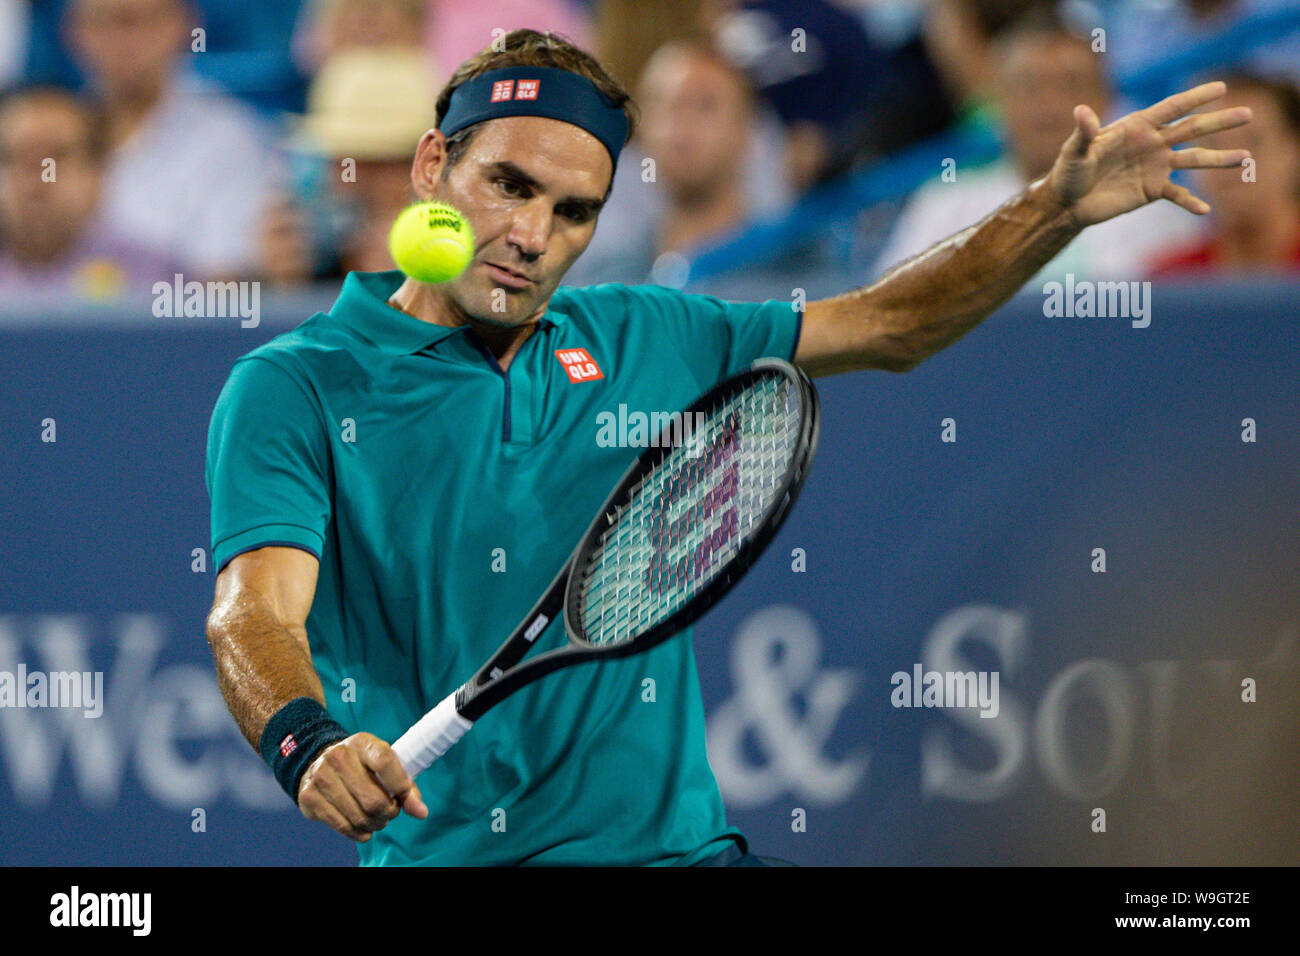 Mason, Ohio, USA. 13th Aug, 2019. Roger Federer, (SUI) hits a backhand shot during Tuesday's round of the Western and Southern Open at the Lindner Family Tennis Center, Mason, Oh. Credit: Scott Stuart/ZUMA Wire/Alamy Live News Stock Photo